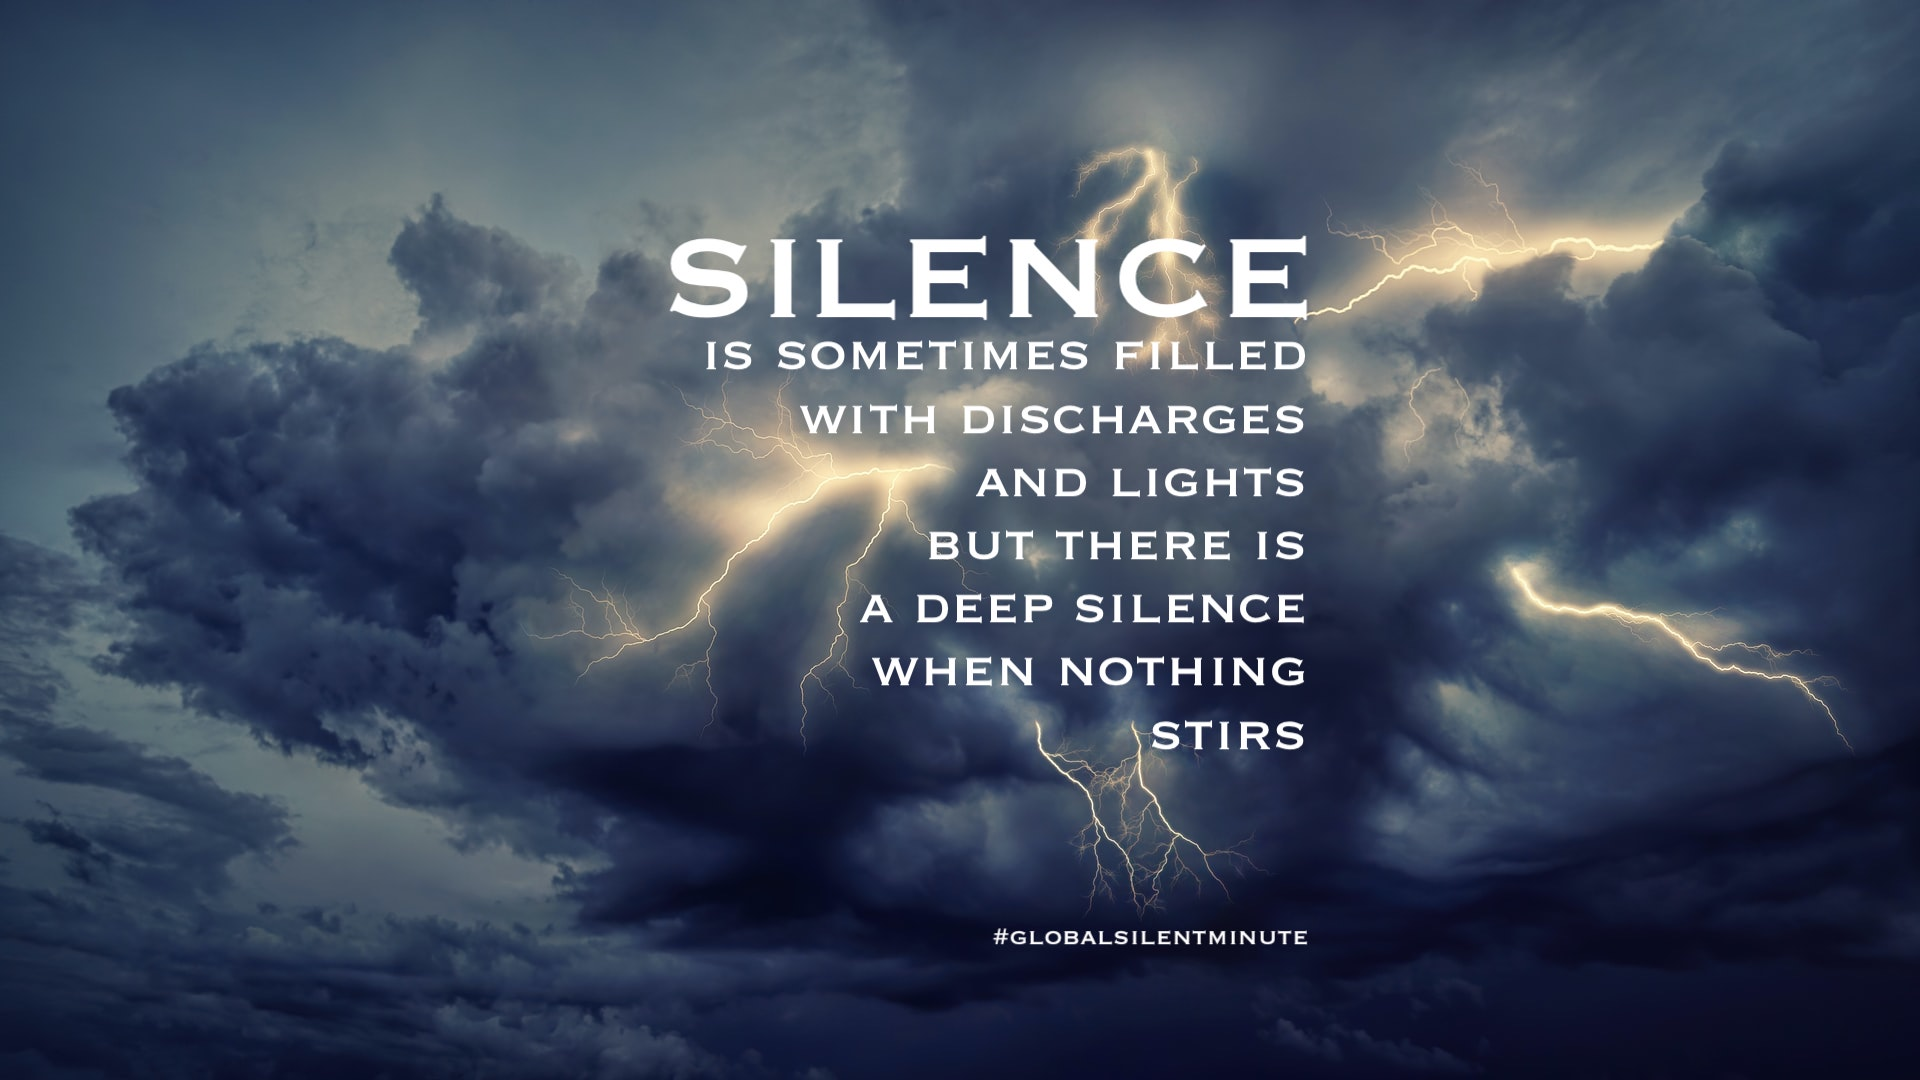 10.Silence is sometimes filled with discharges